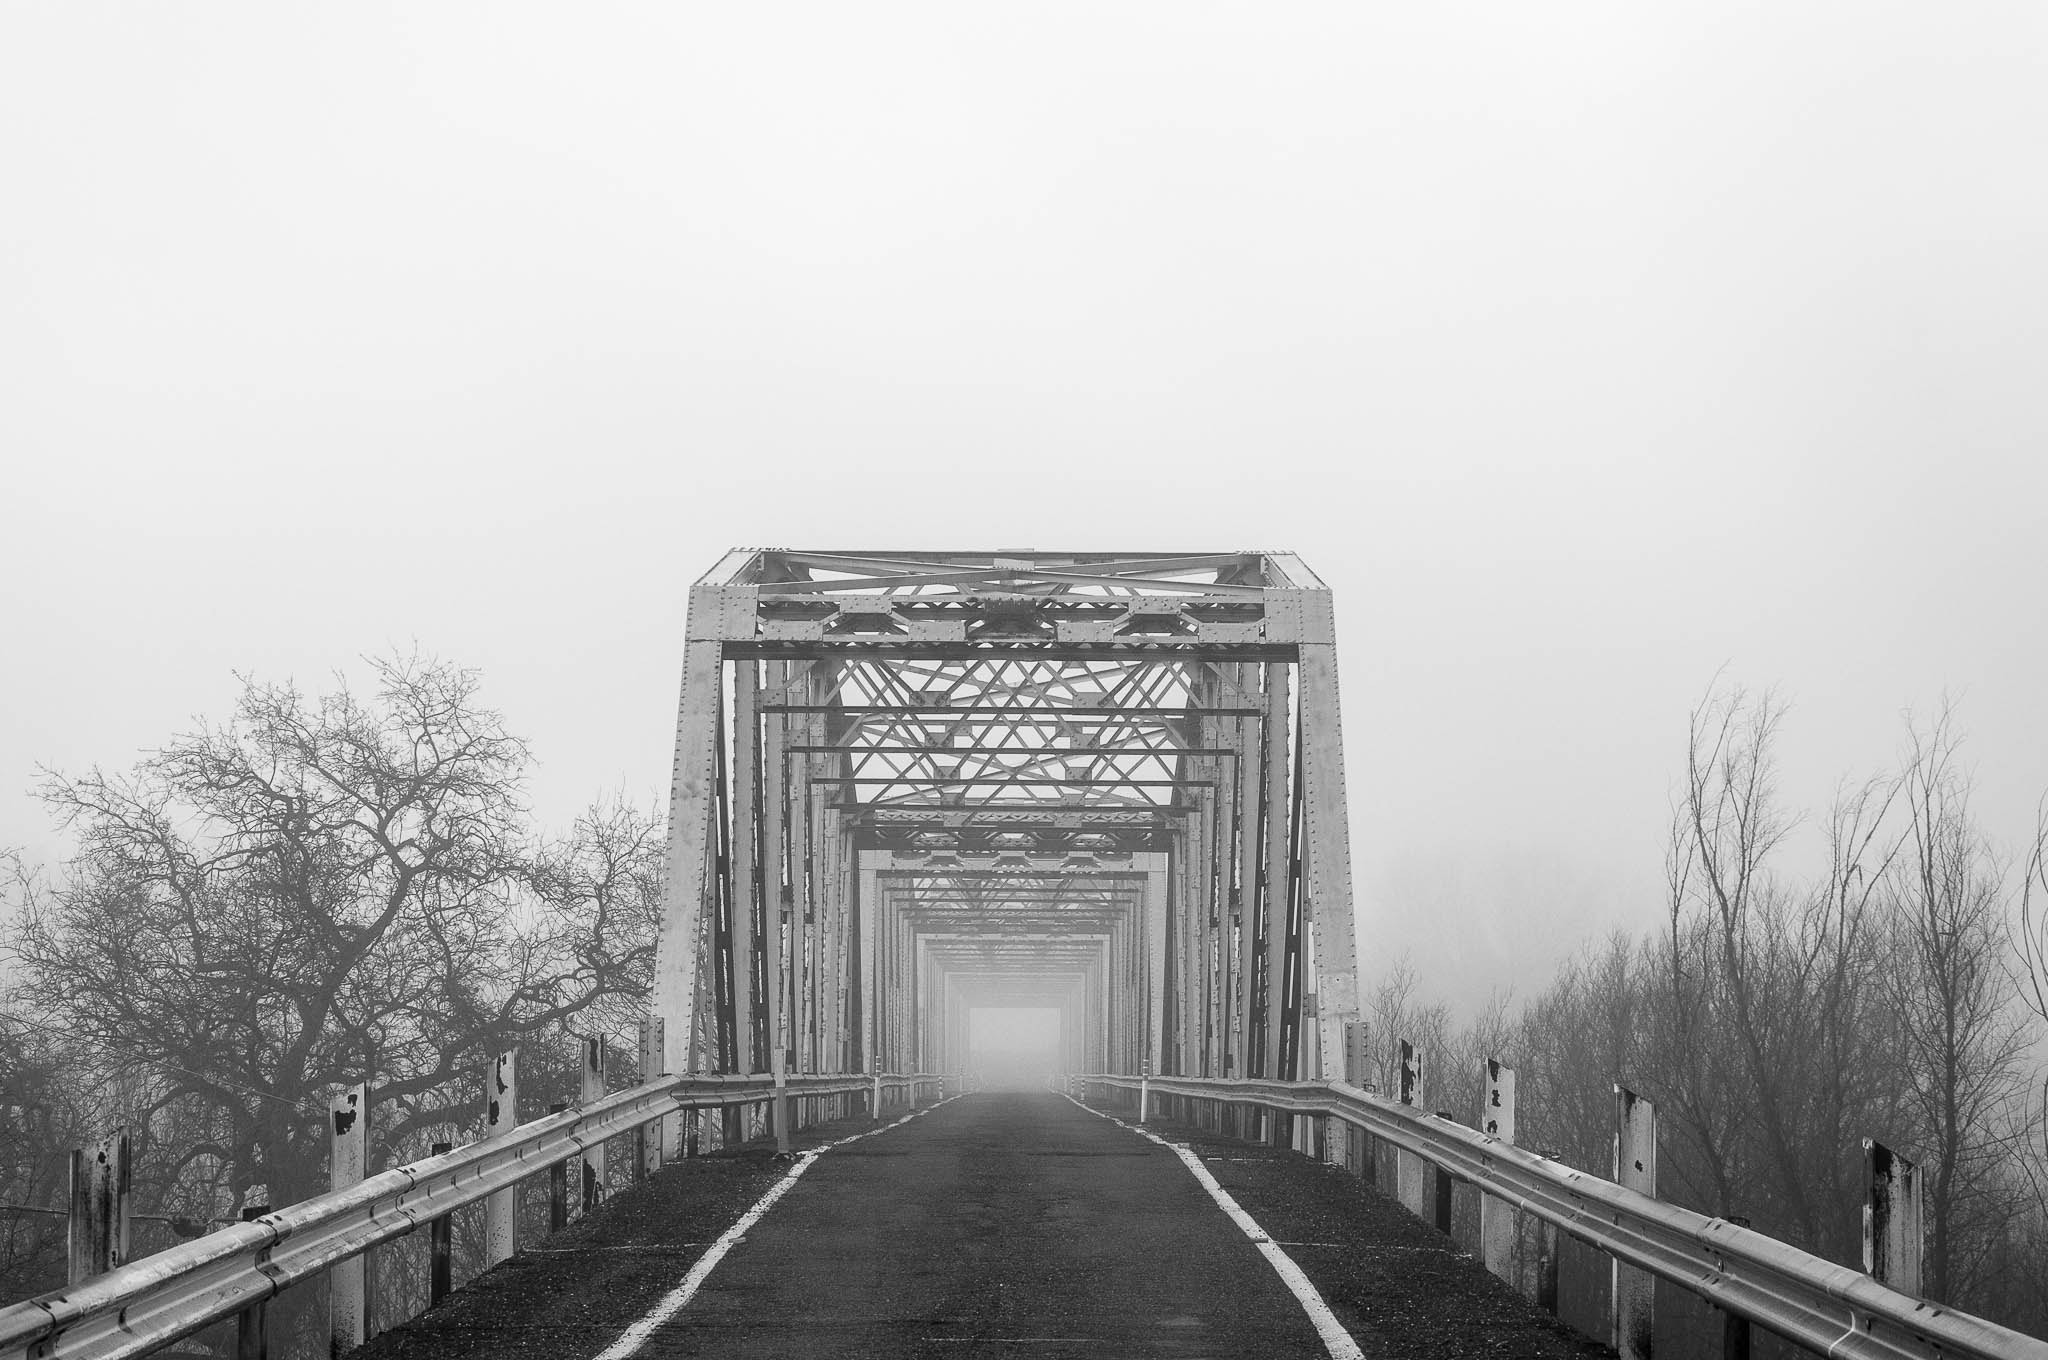 Photograph Over Here (Jellys Ferry Bridge) by Eric Leslie on 500px